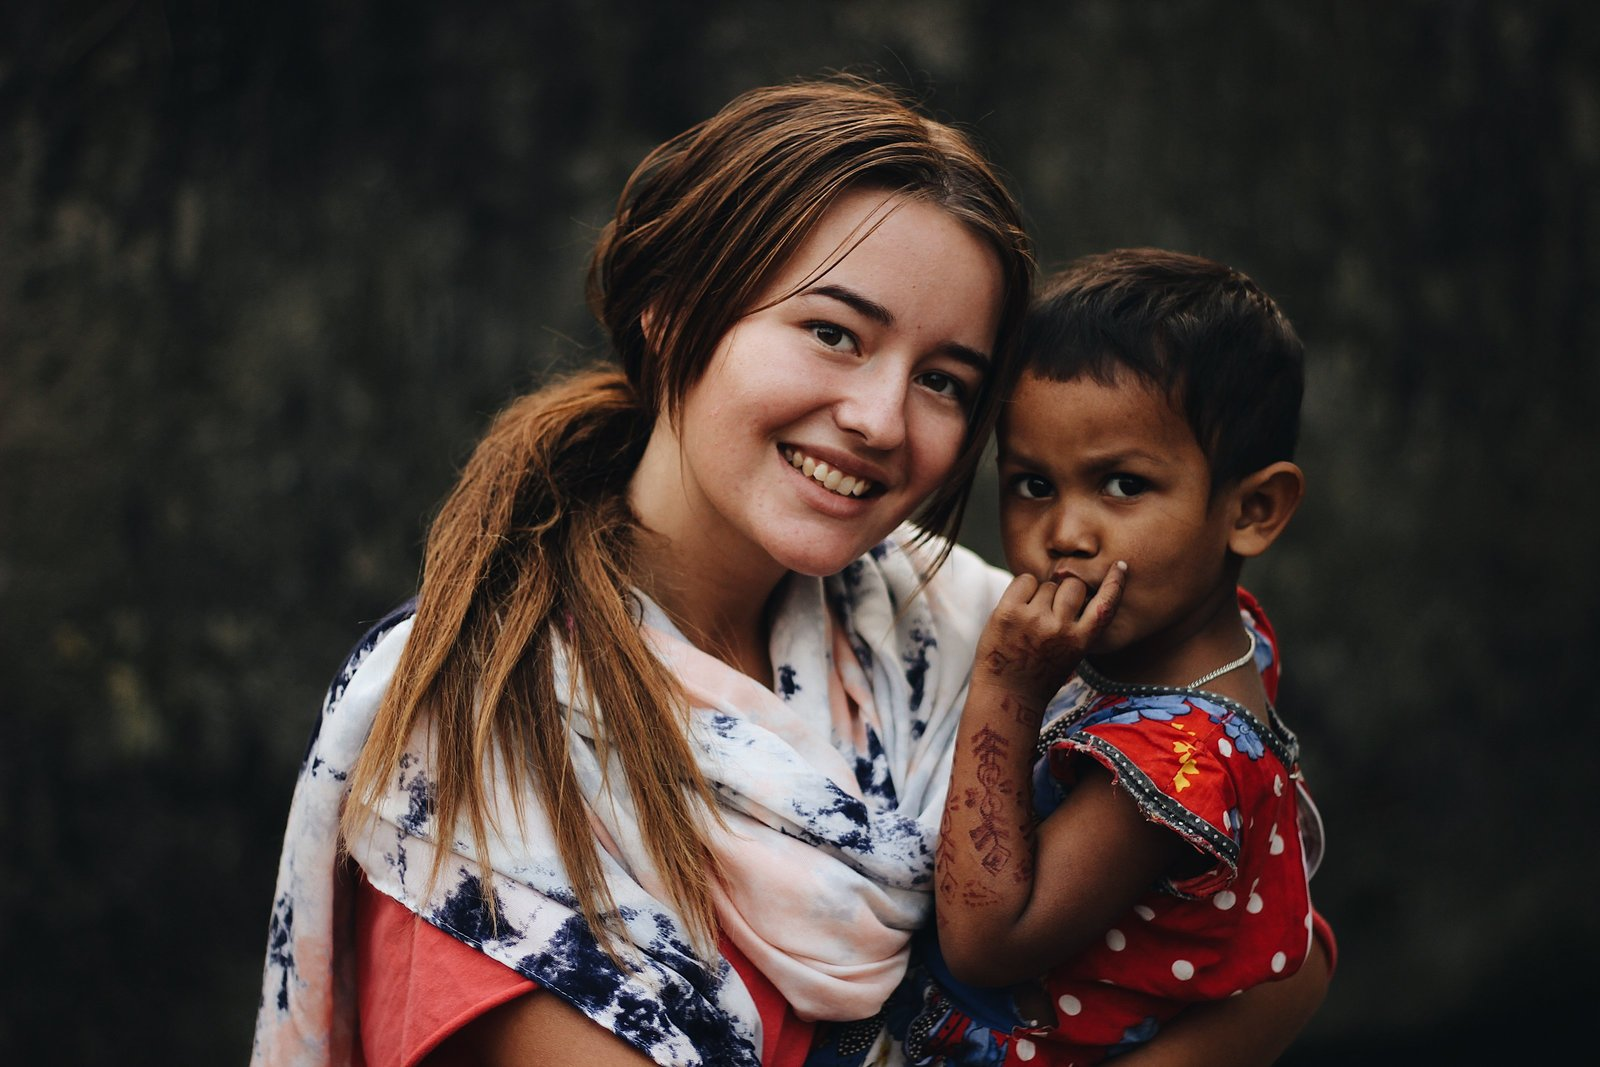 liv hettinga photography doing missions work in India